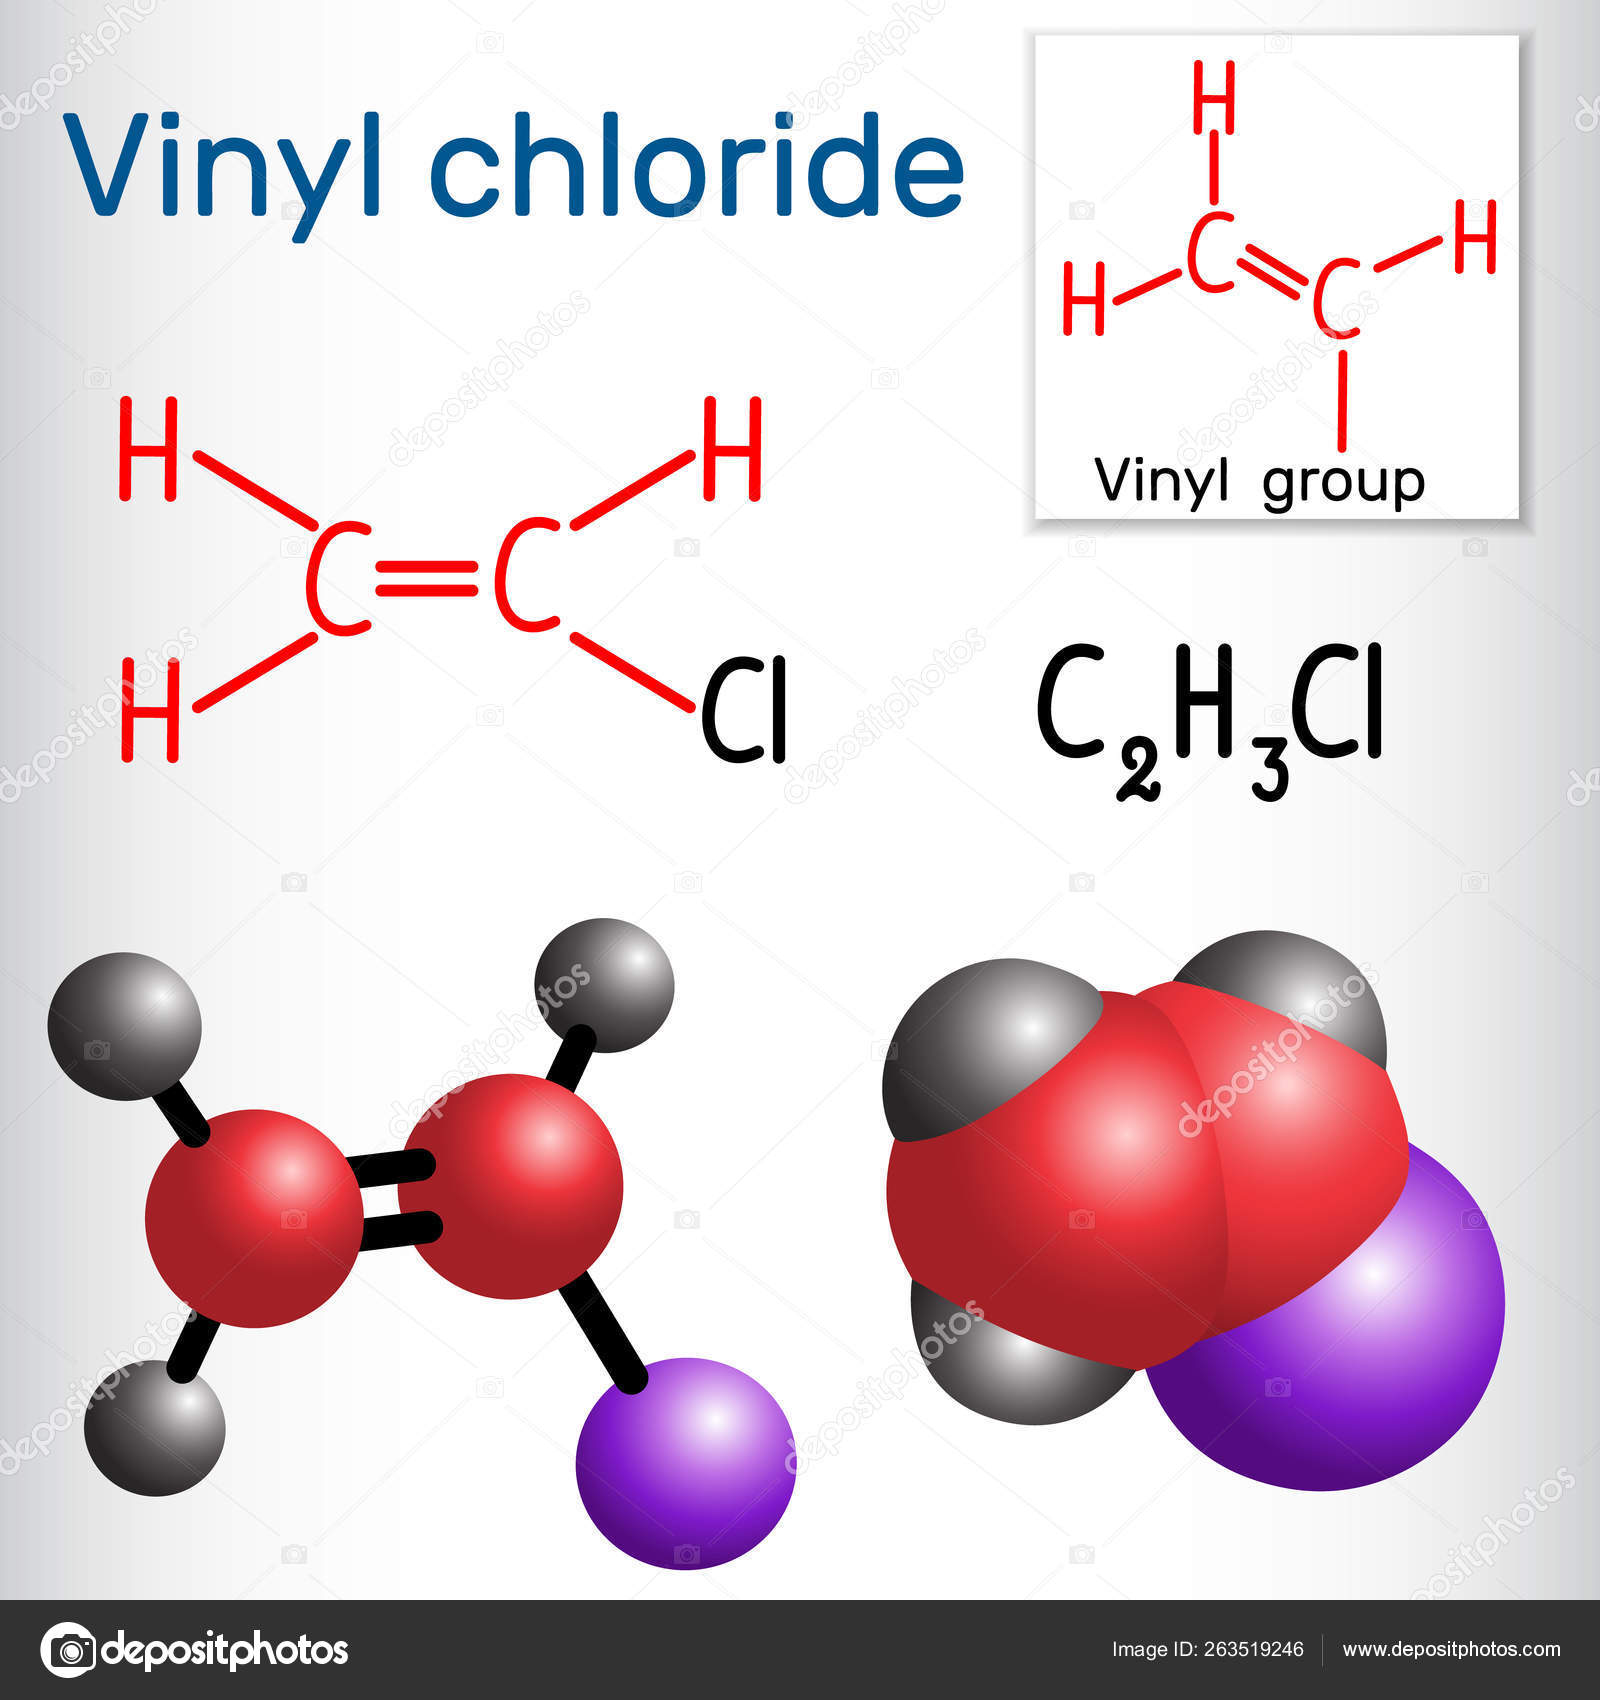 Vinyl chloride molecule  It is also called vinyl chloride